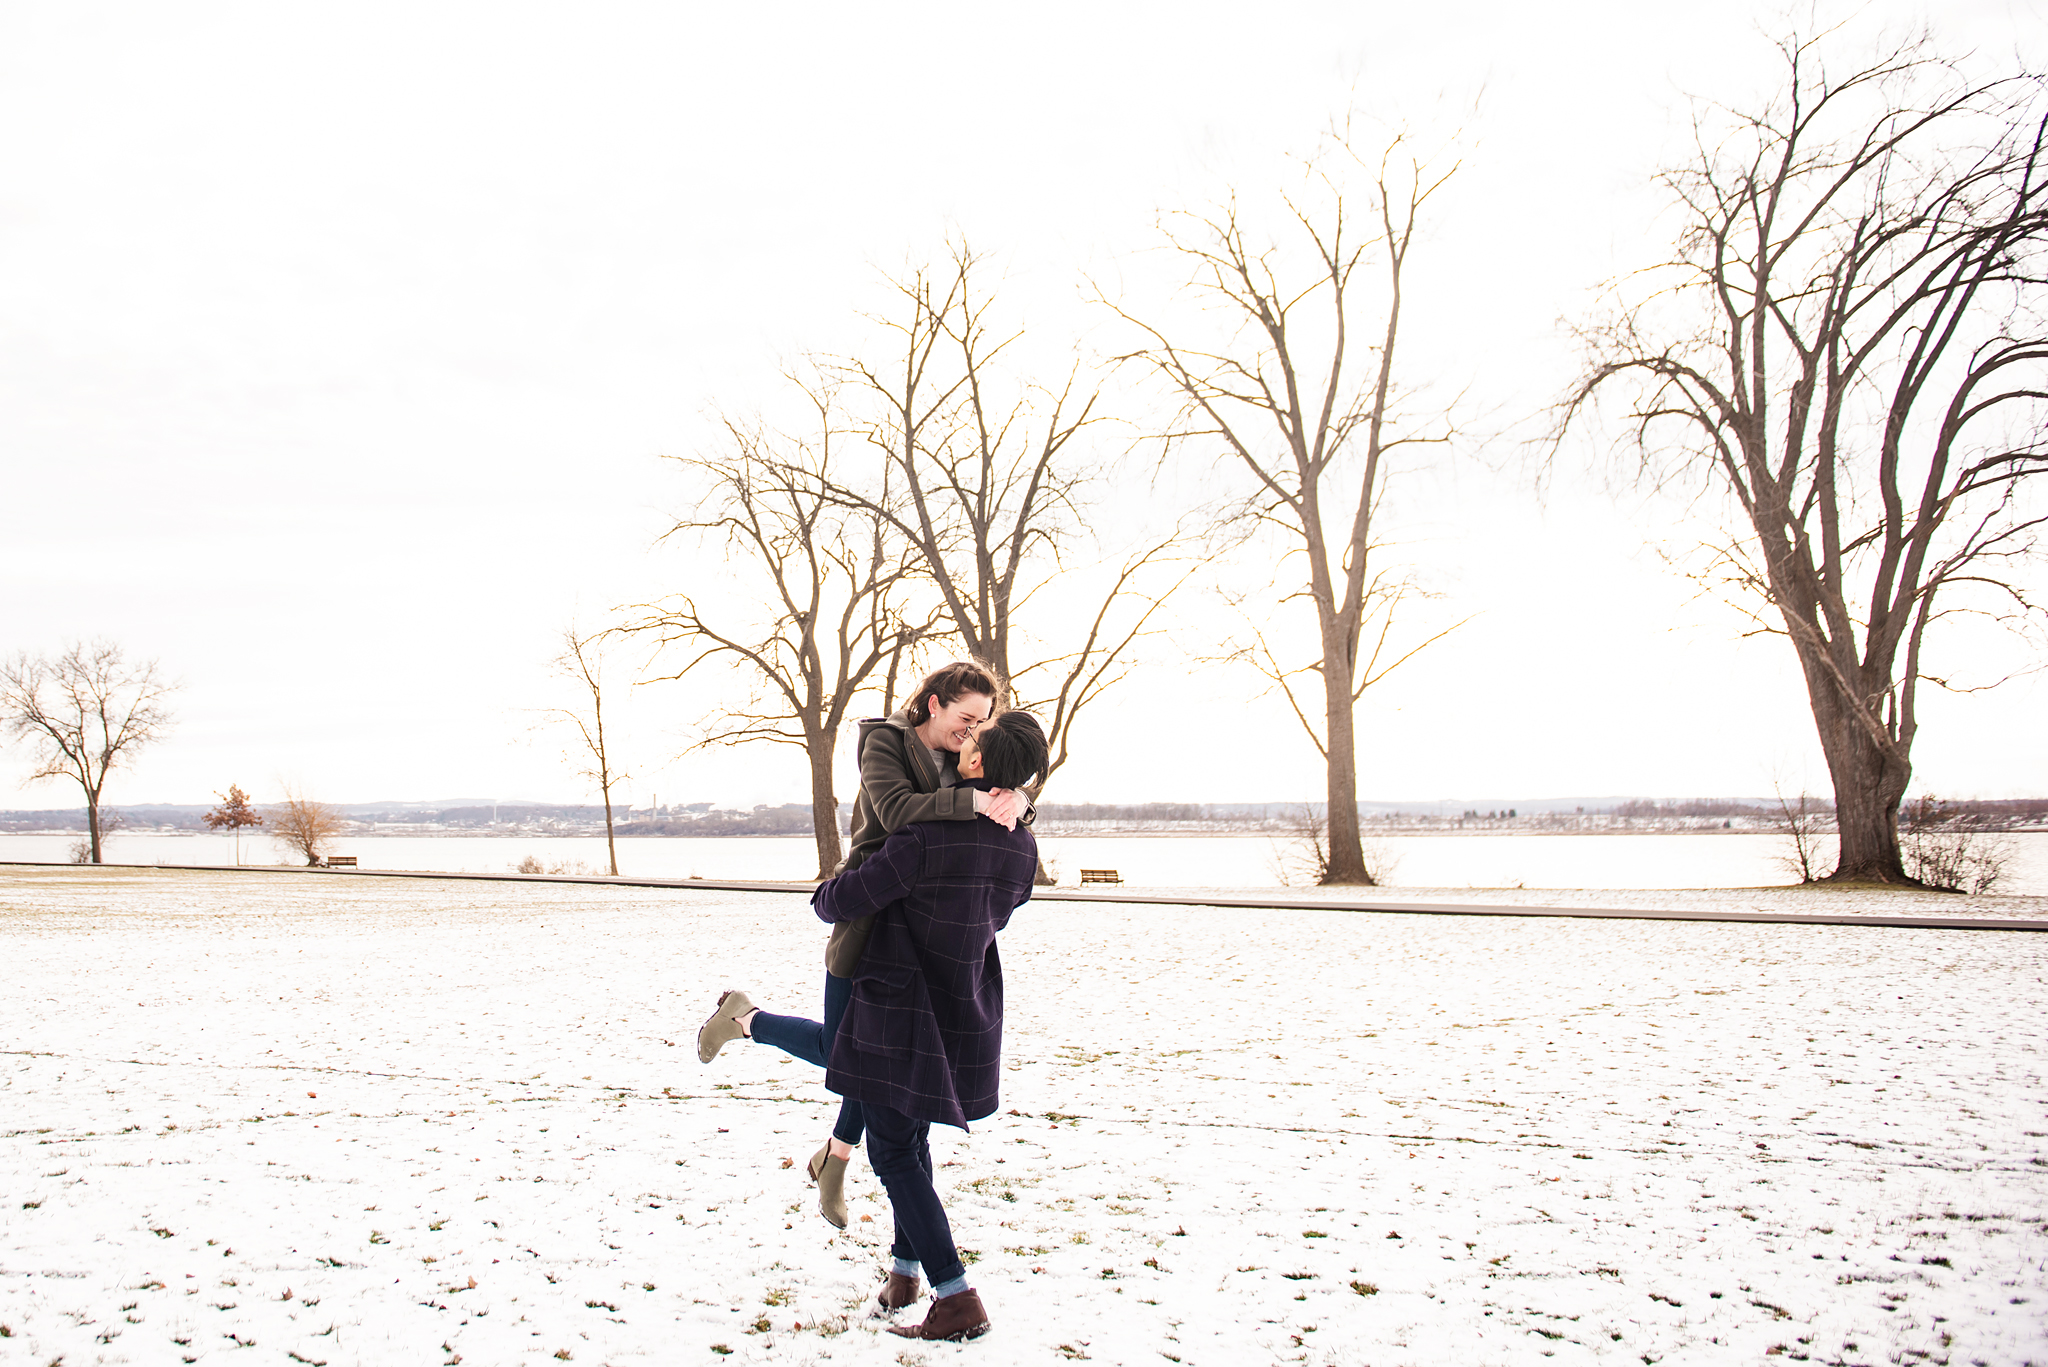 Onondaga_Lake_Park_Syracuse_Engagement_Session_JILL_STUDIO_Rochester_NY_Photographer_DSC_3398.jpg